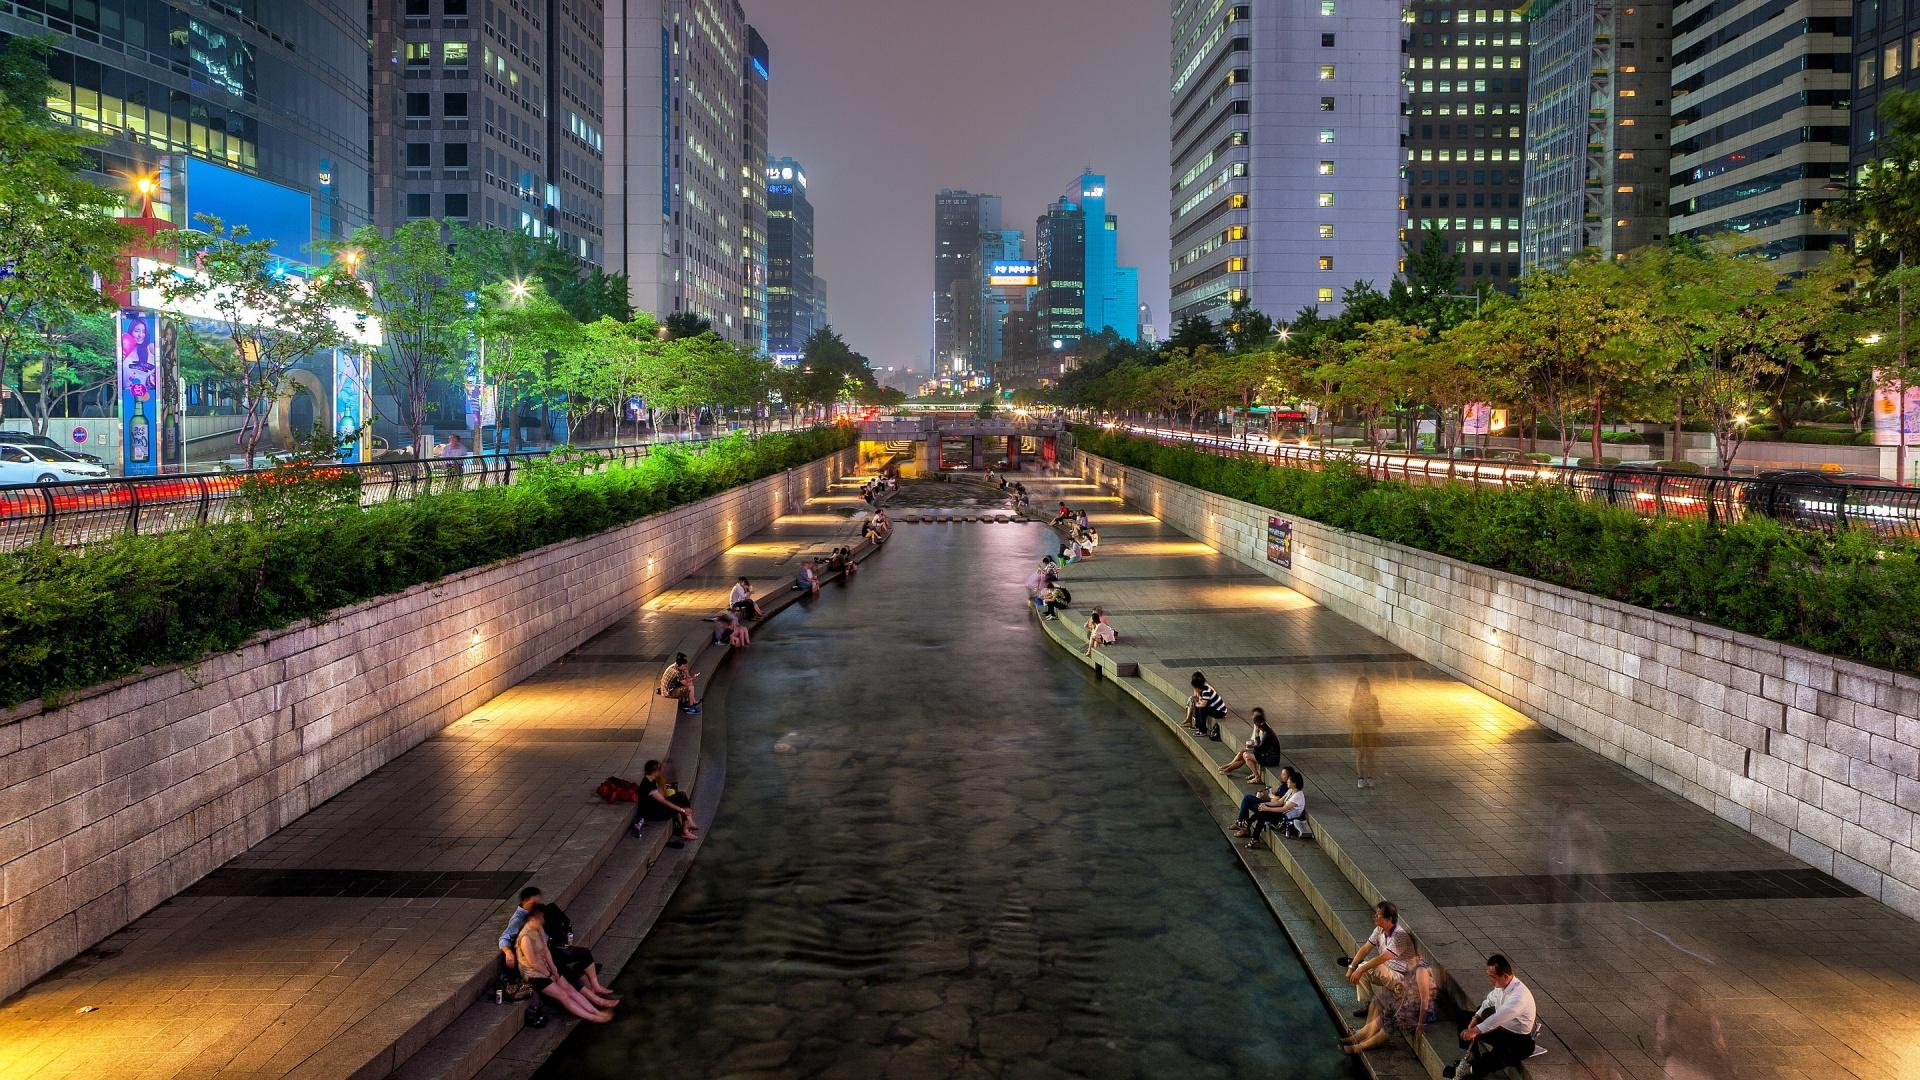 Seoul South Korea Wallpapers Top Free Seoul South Korea